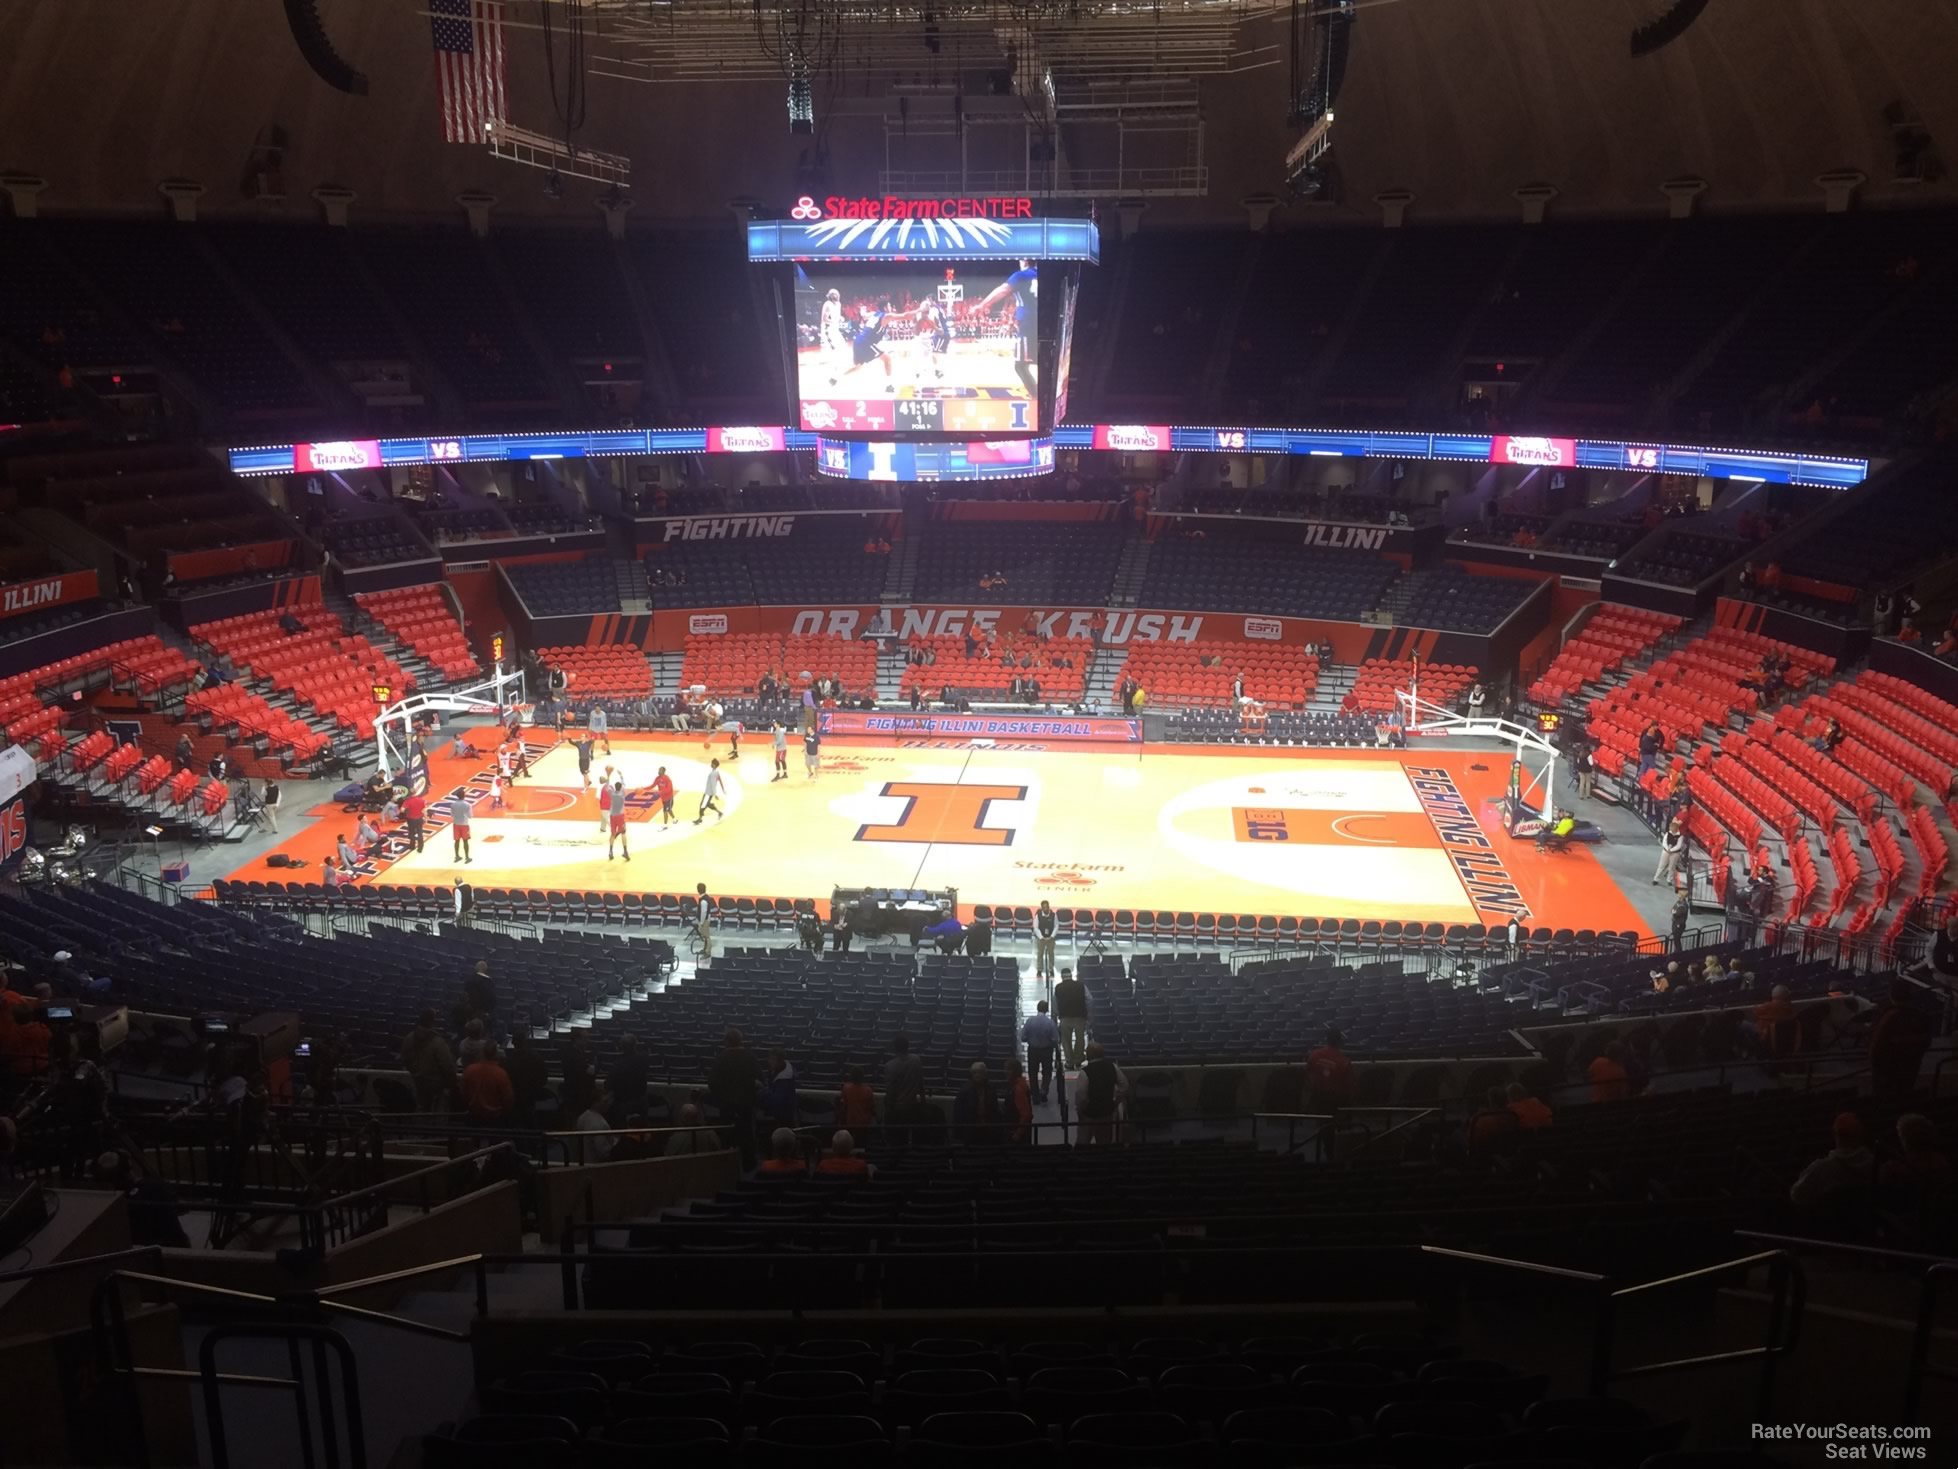 Seat View for State Farm Center Section 248, Row 10